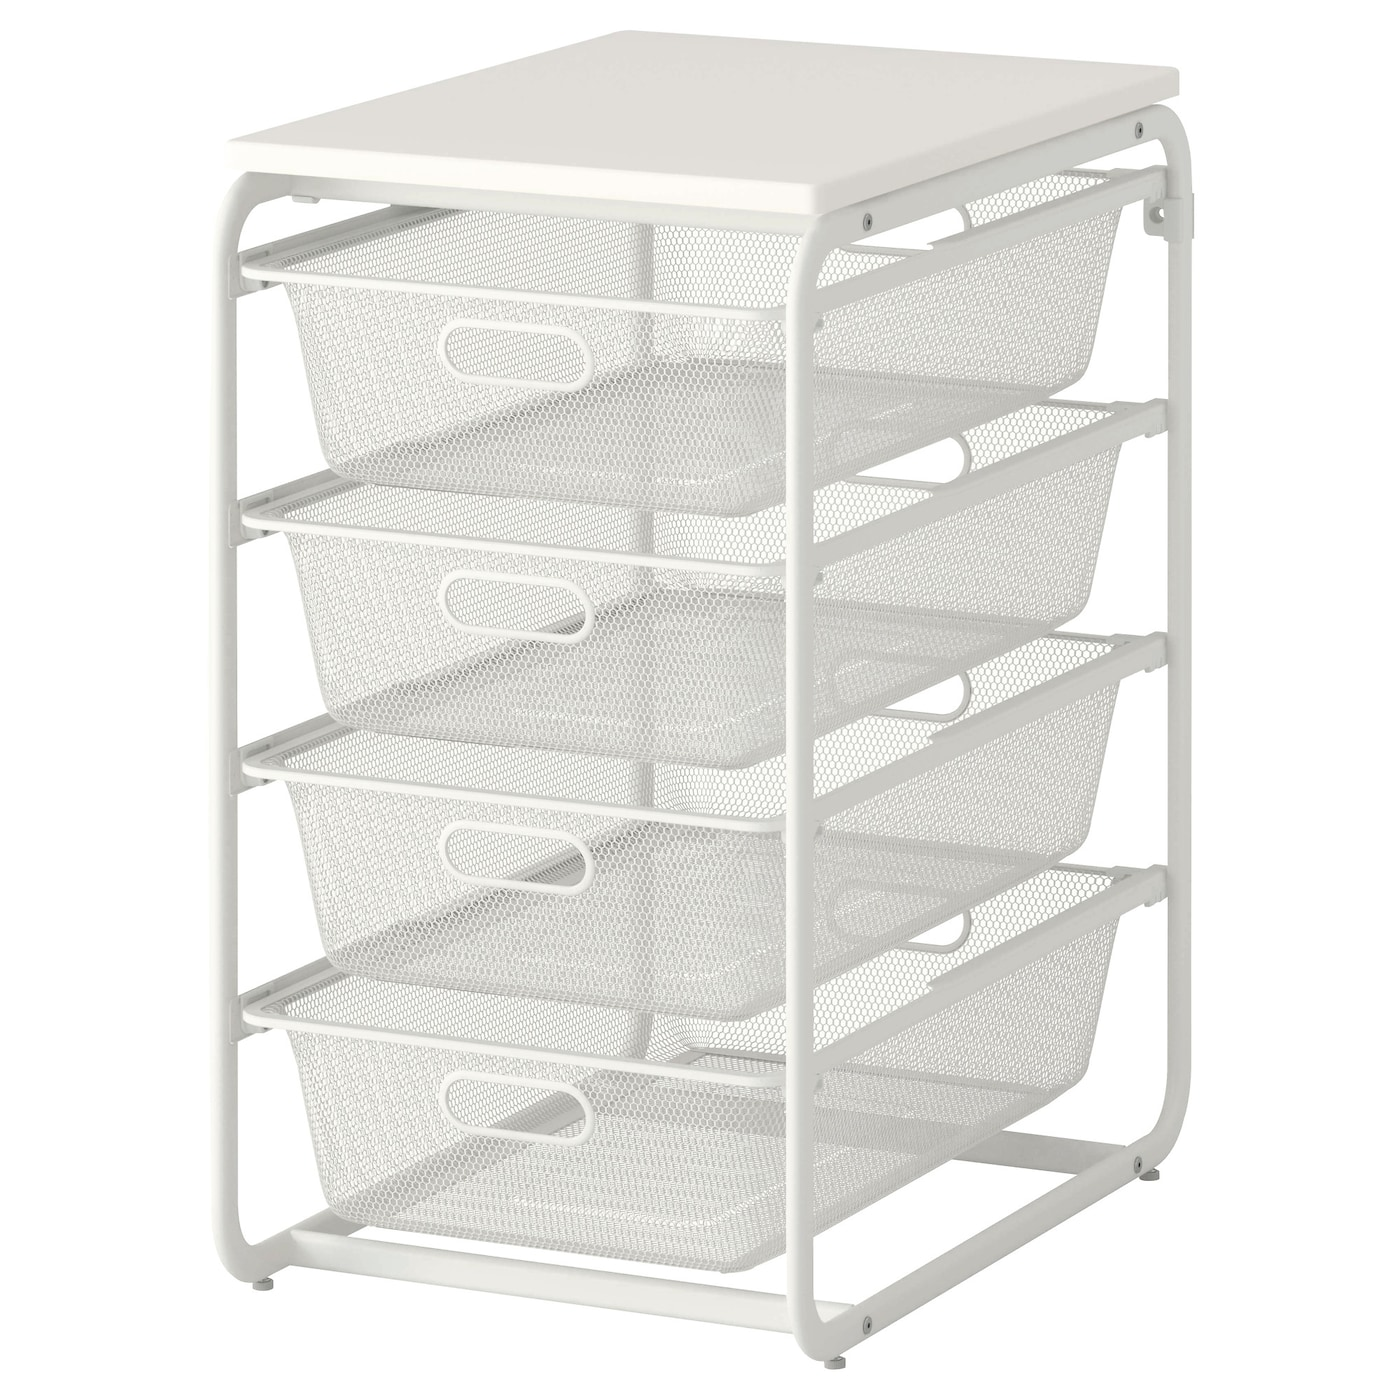 algot frame 4 mesh baskets top shelf white 41x60x75 cm ikea. Black Bedroom Furniture Sets. Home Design Ideas